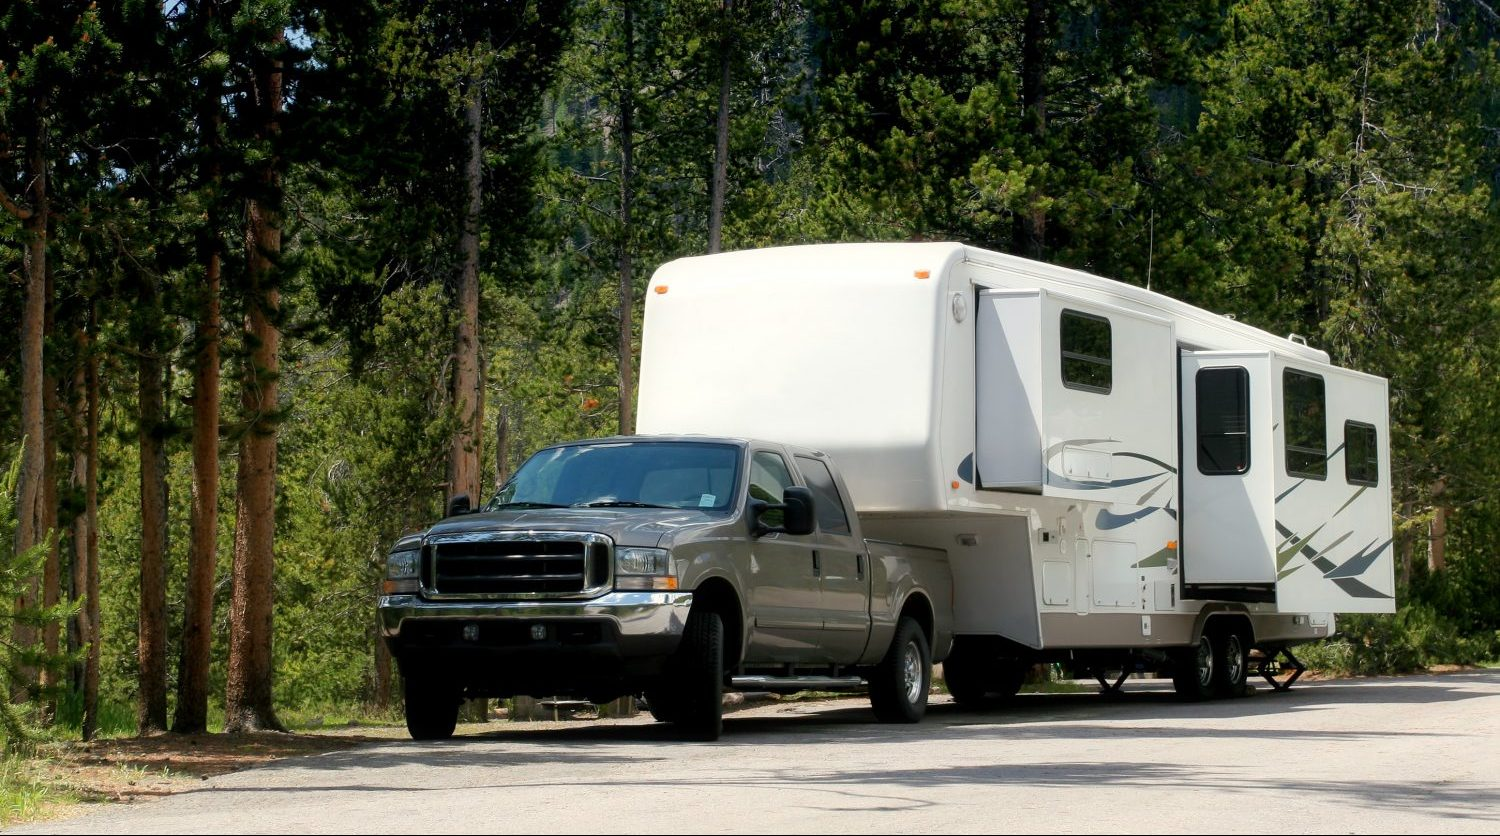 a camper / trailer in yellowstone national park